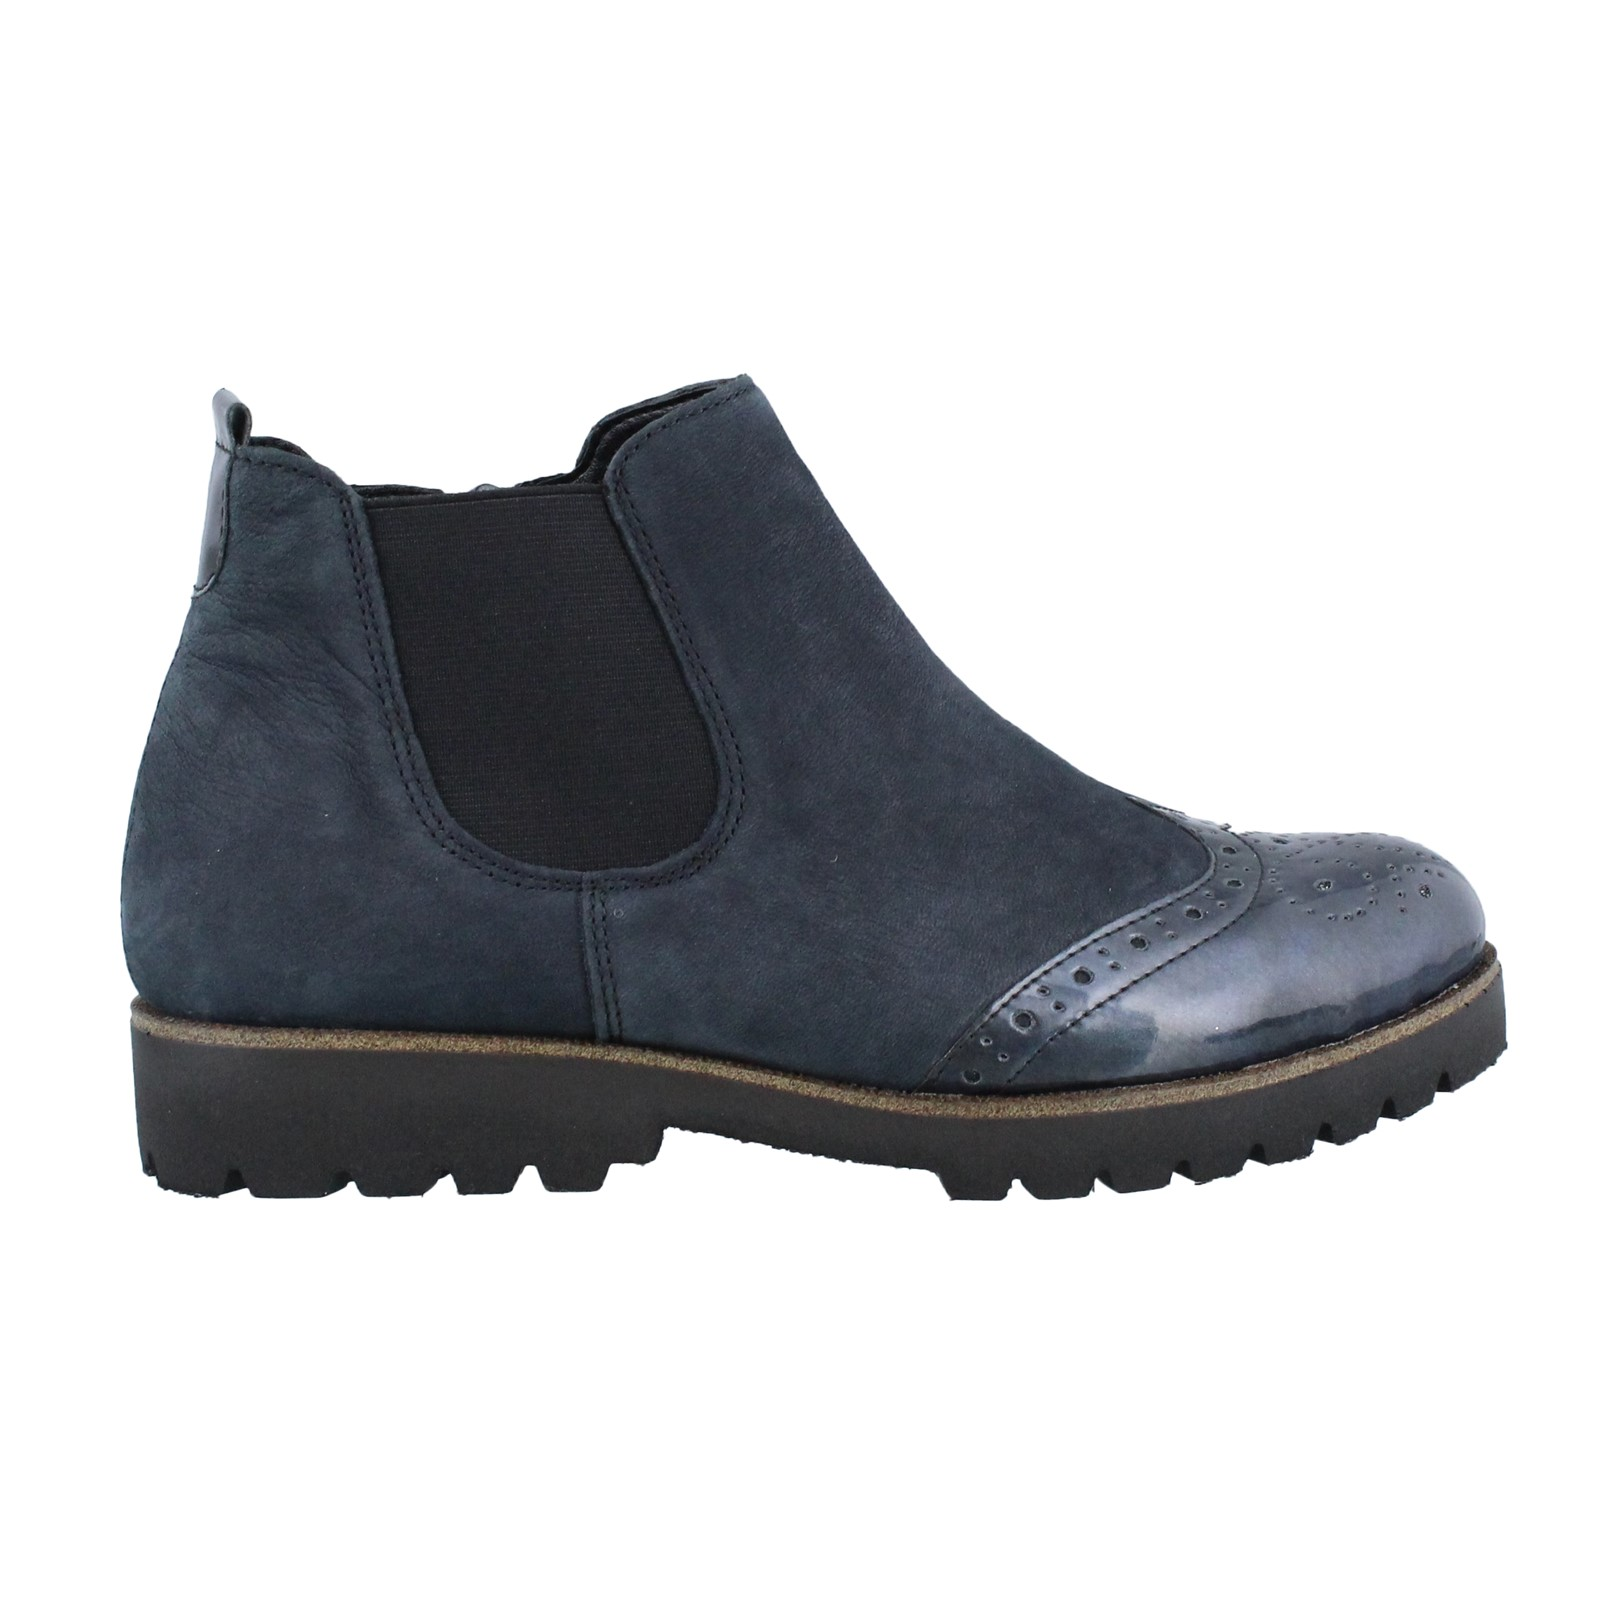 Women's Remonte, D0178 Ankle Boot